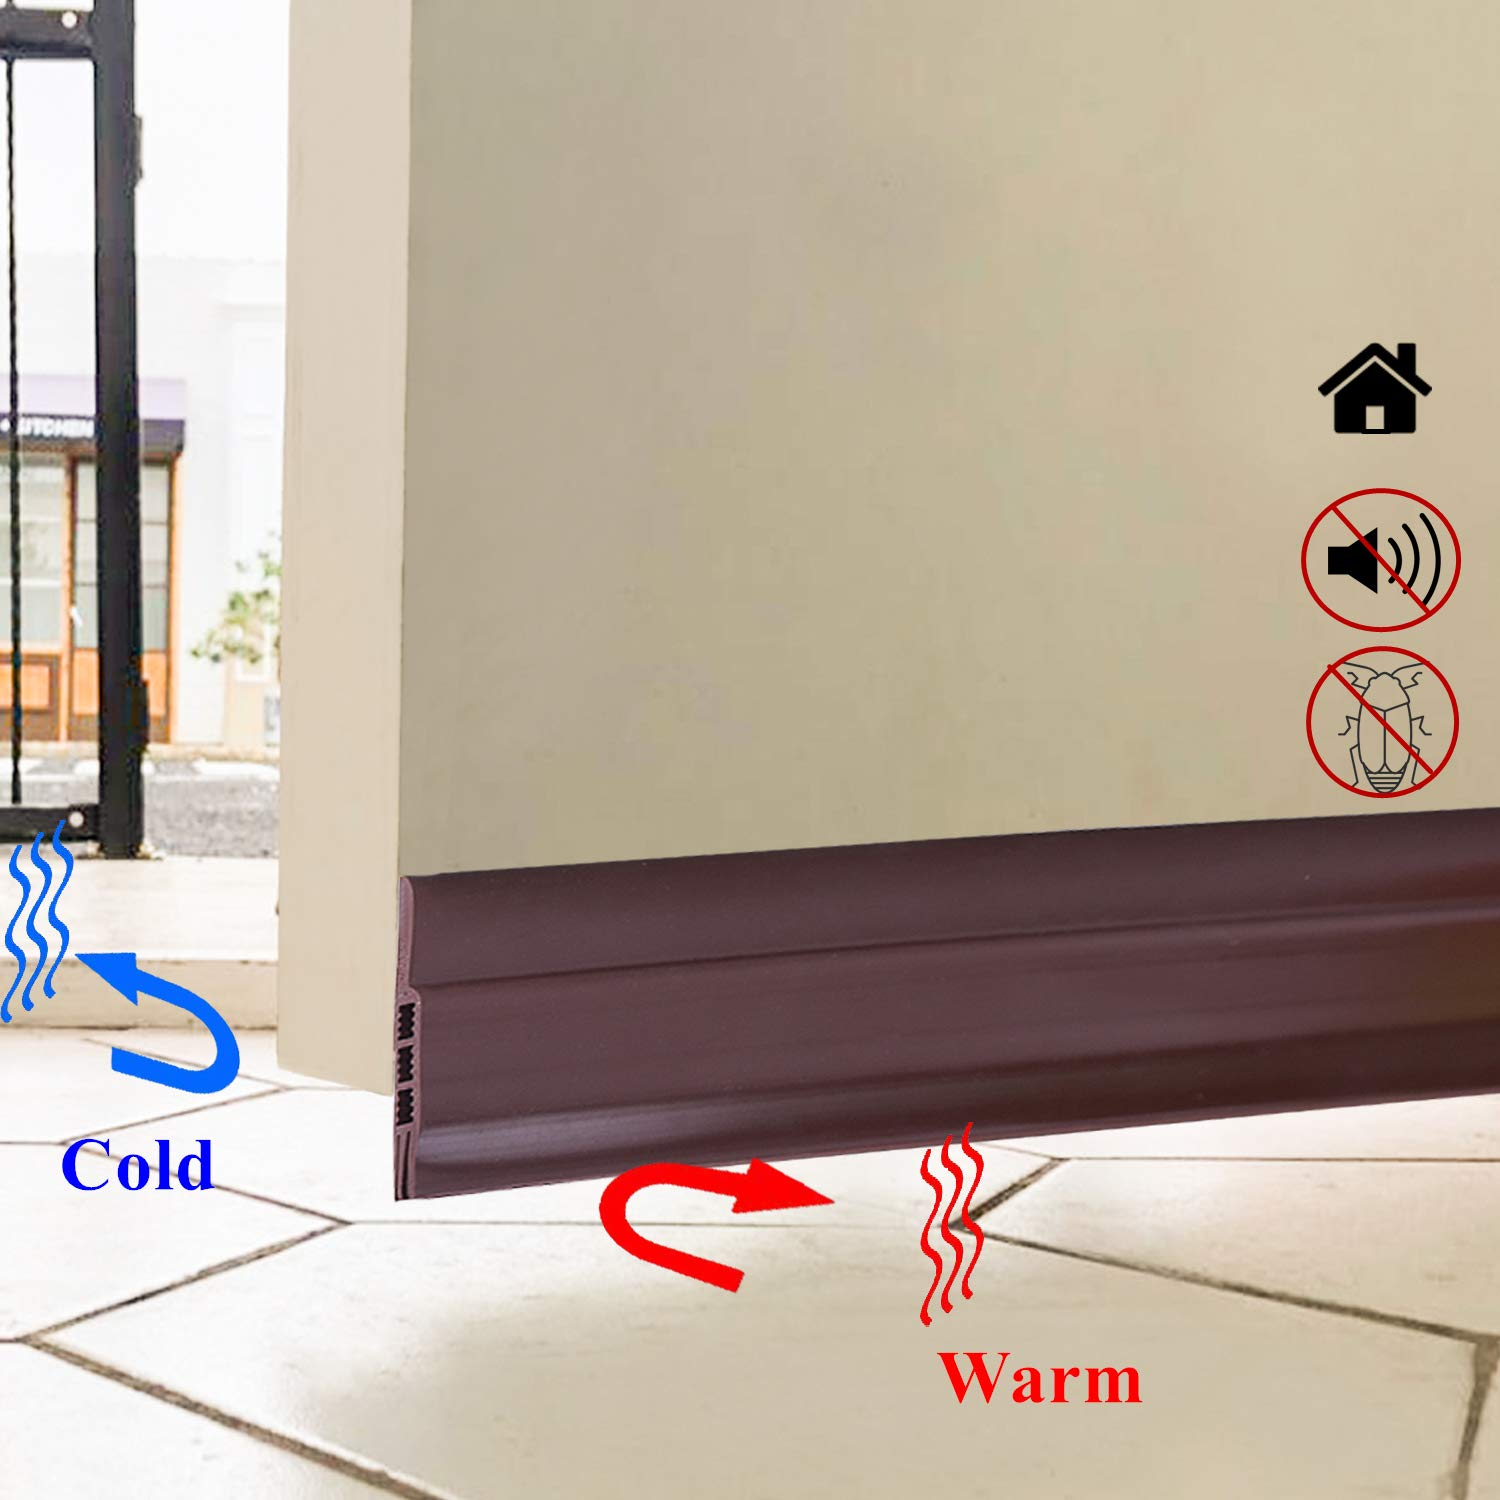 YIPINTANG Under Door Seal, Door Draft Stopper Noise Stopper, Strong Adhesive Door Weather Stripping Energy Saver - 2'' Width x 47'' Length (Brown) by YIPINTANG